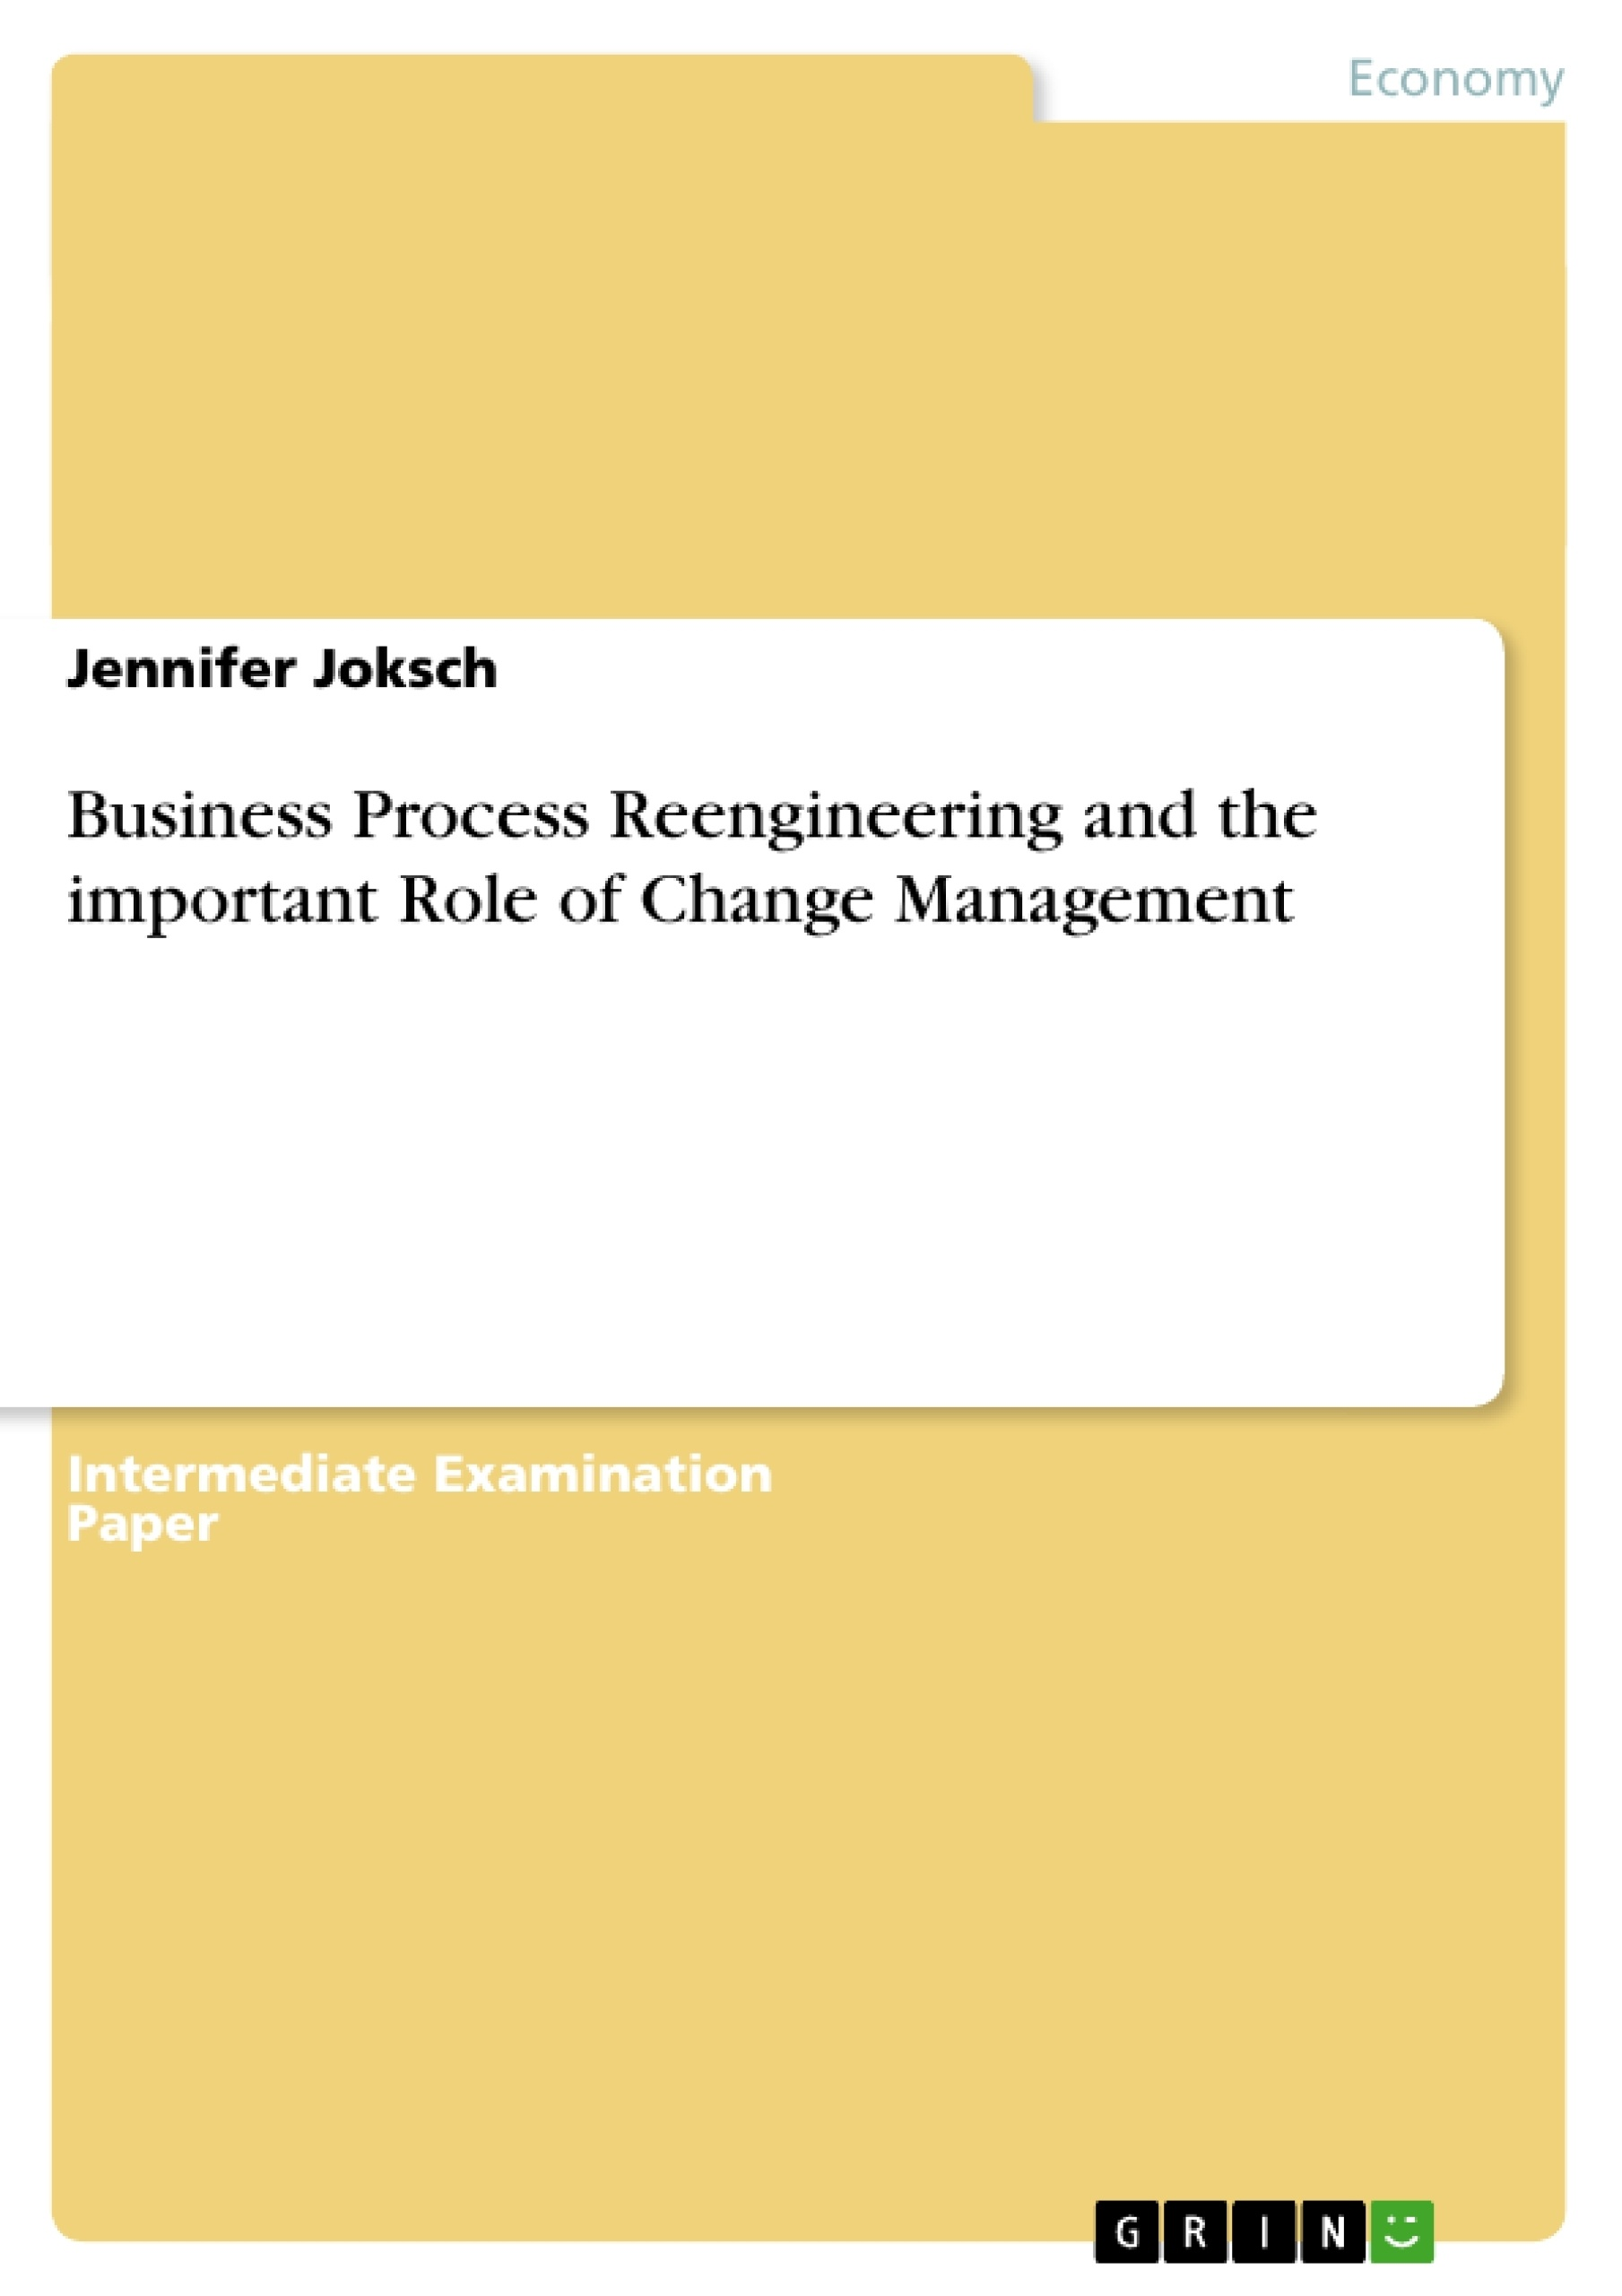 Business process reengineering : separating fact from myth | QUT ePrints